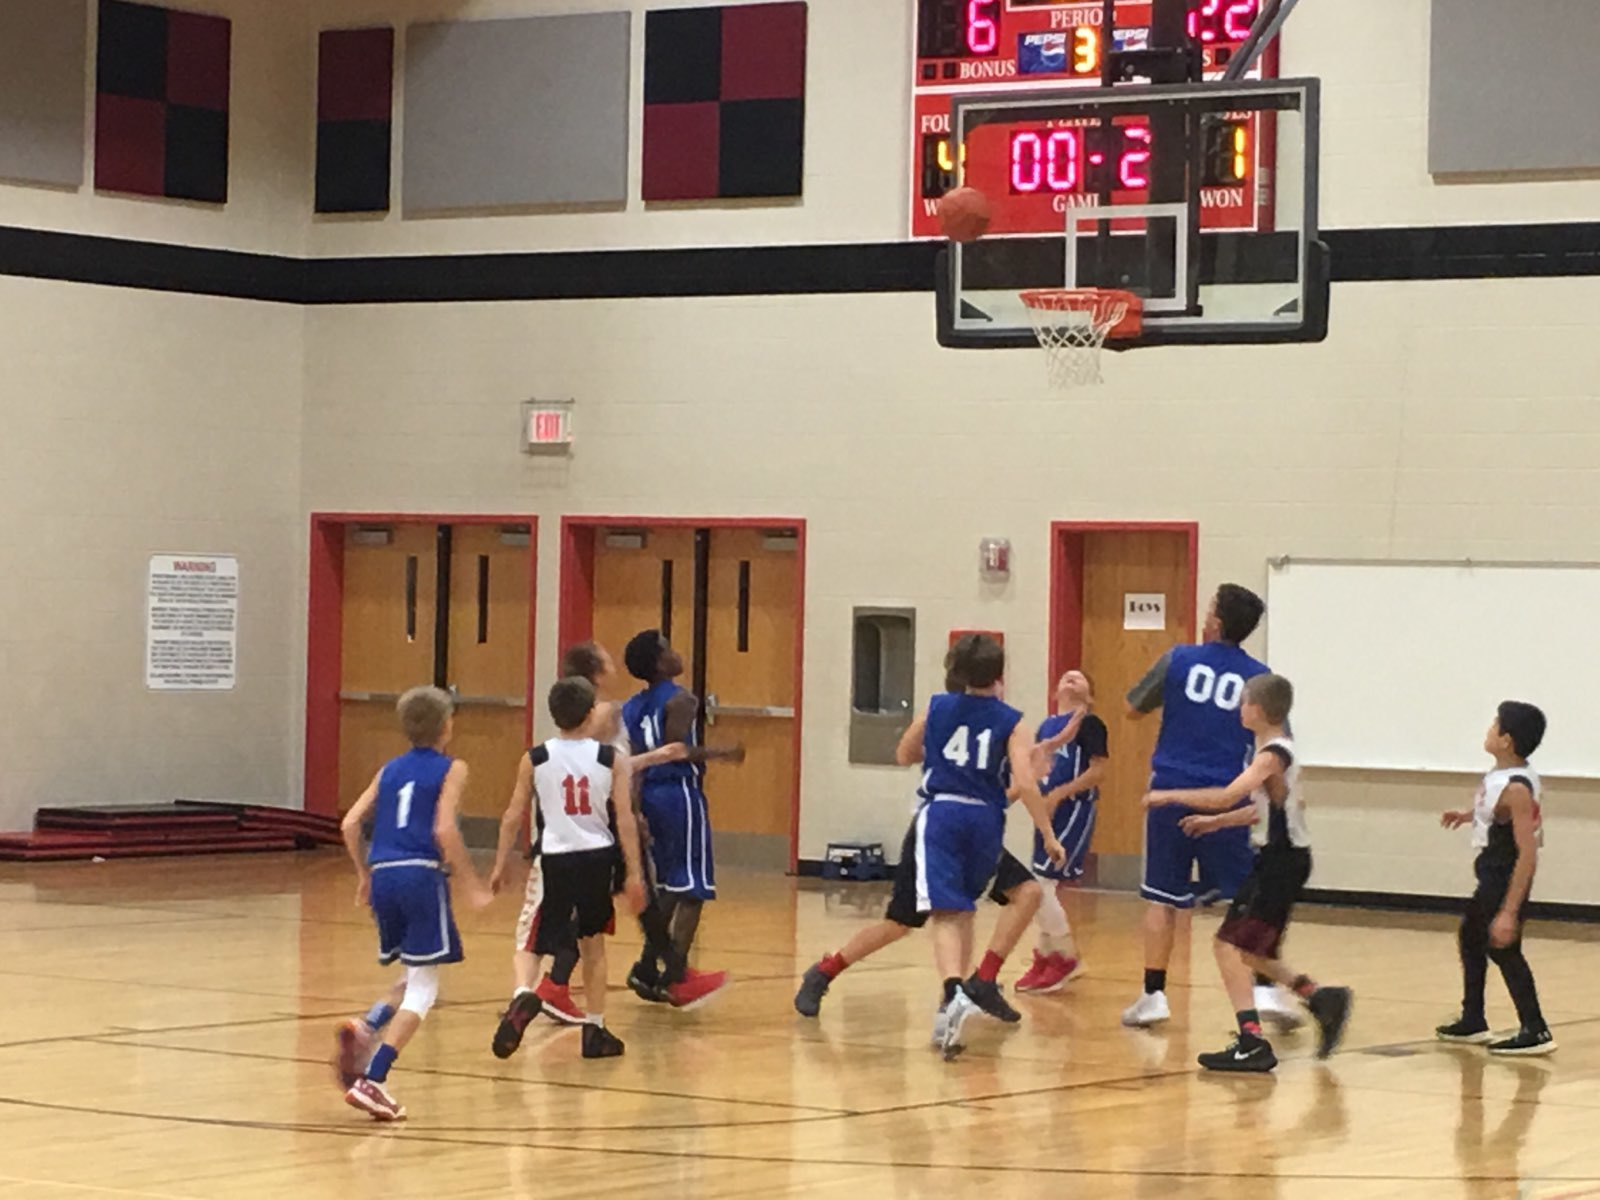 Boys basketball game at Columbia 6th Grade